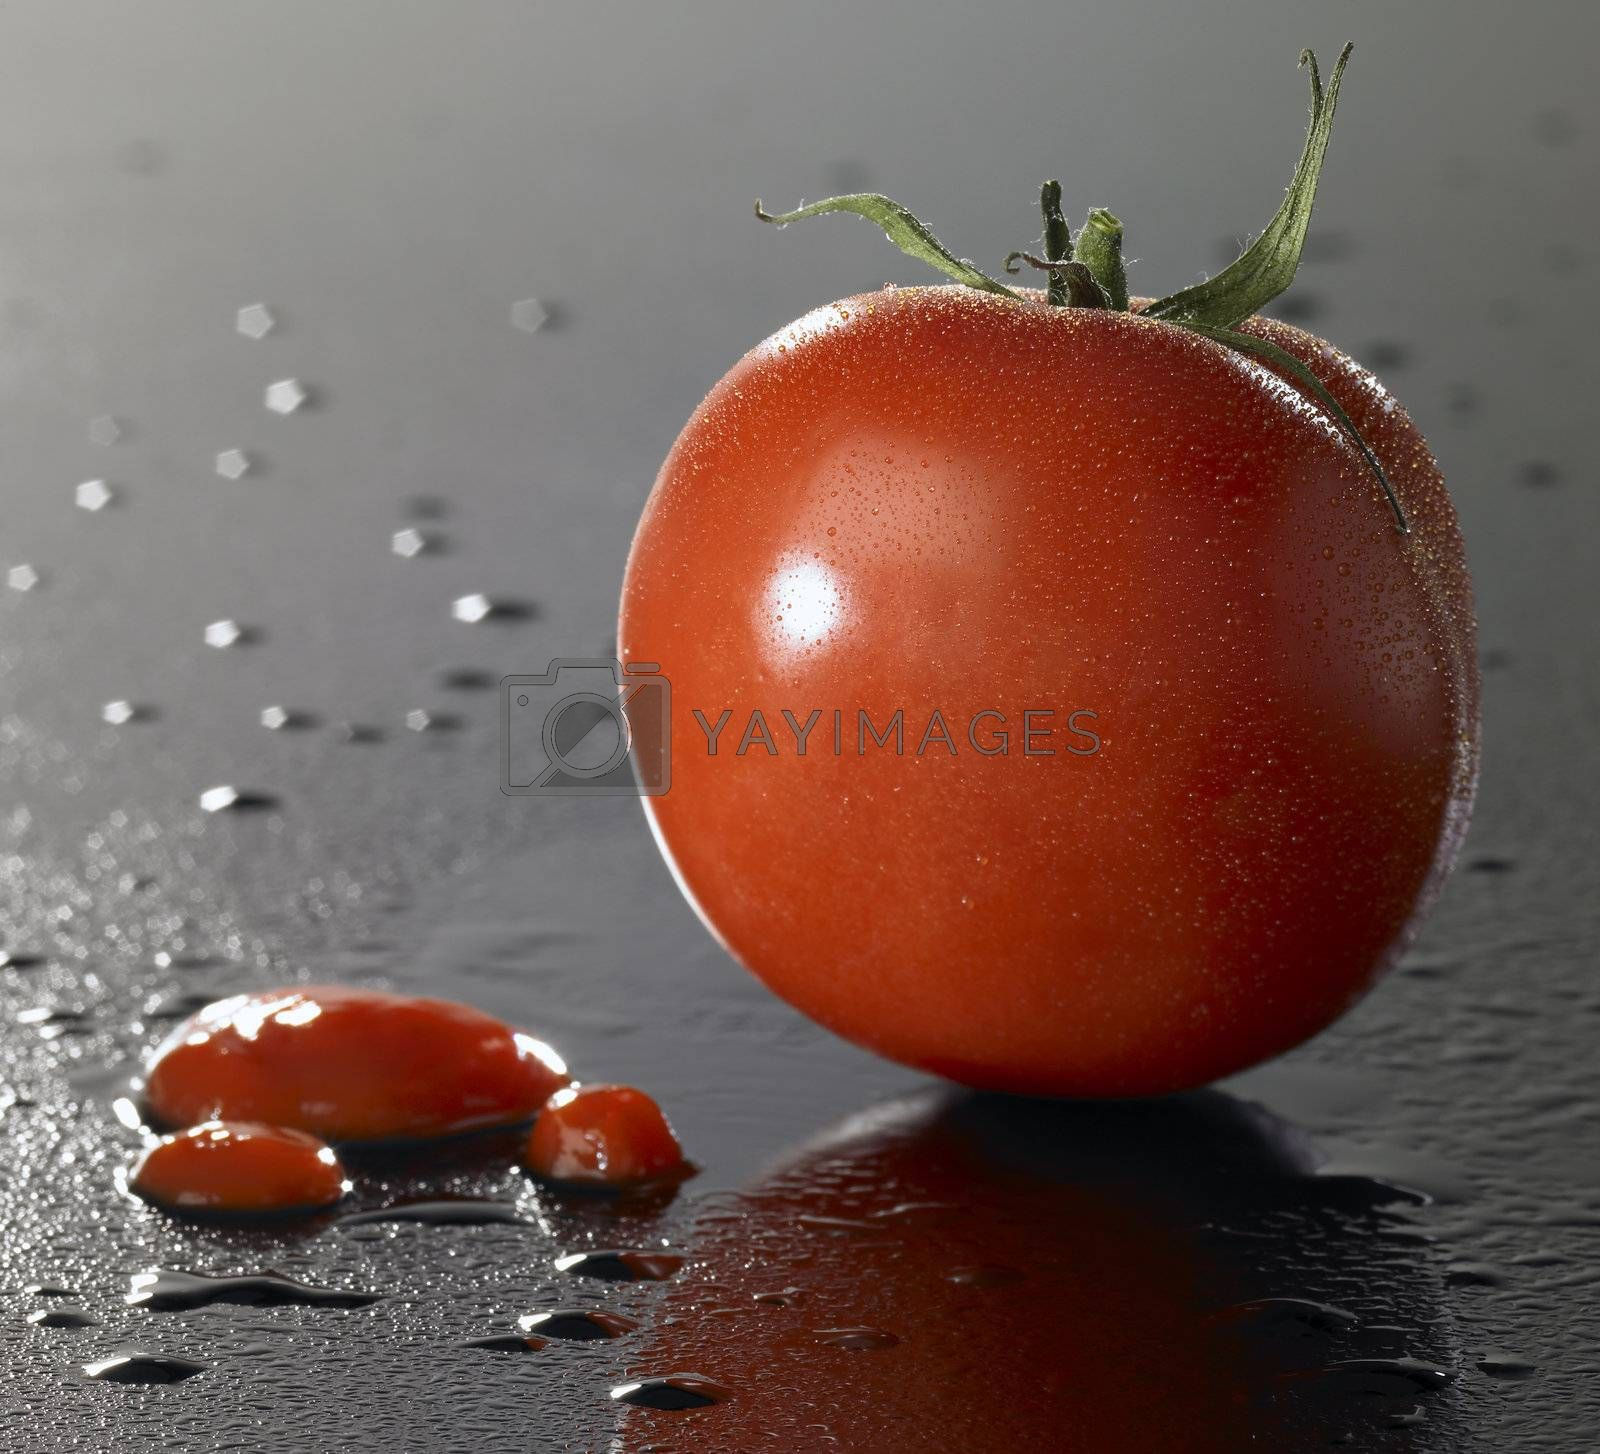 studio shot of a tomato and ketchup on wet surface